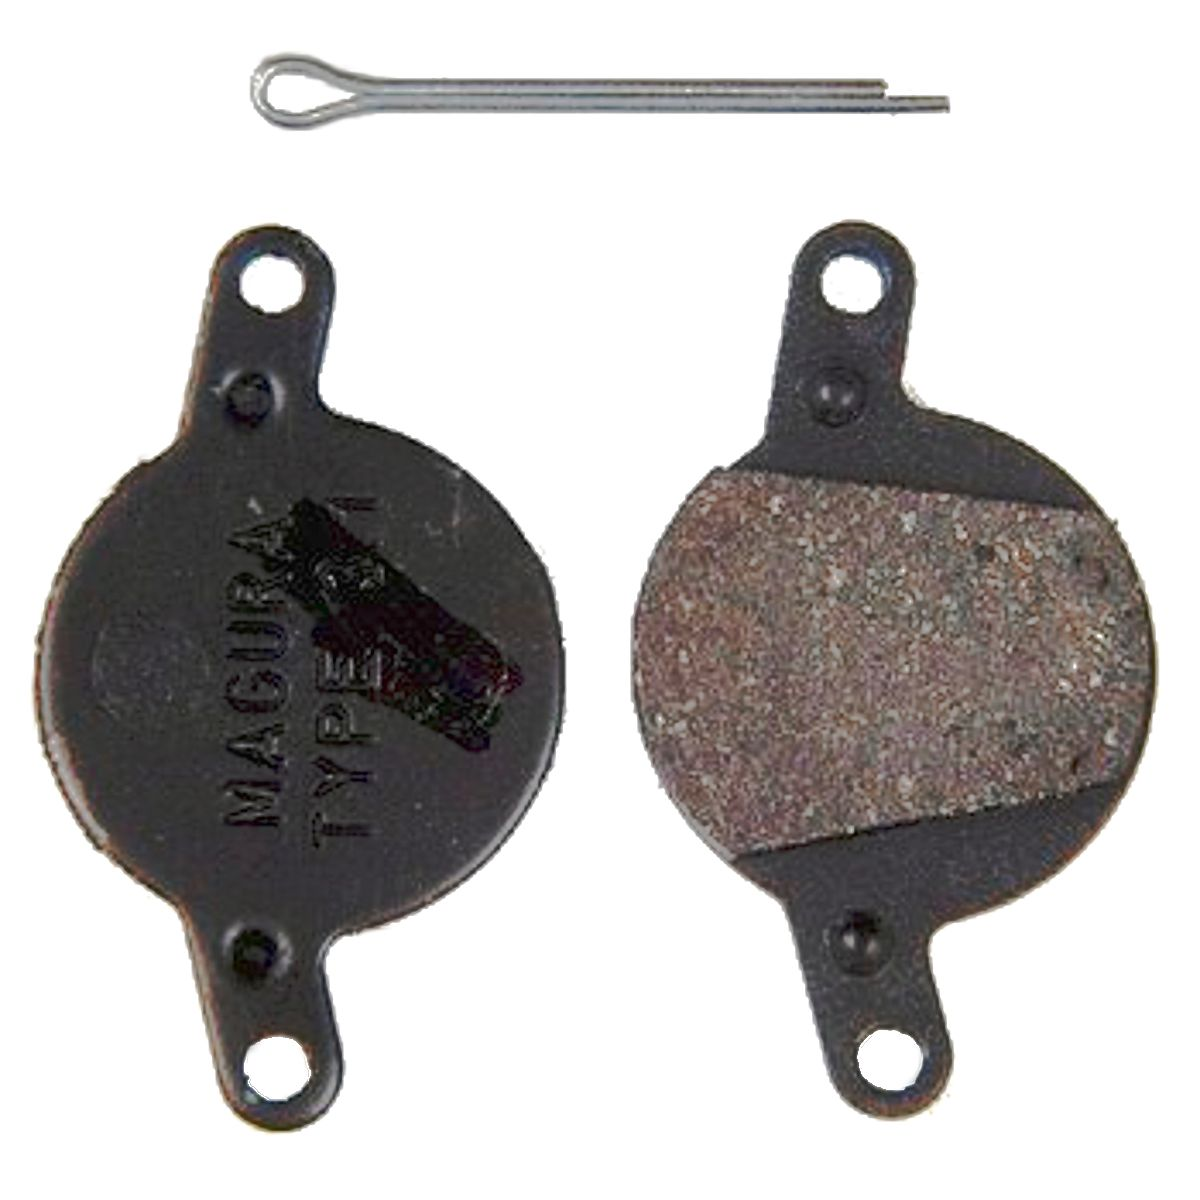 disc brake pads for Louise FR/Louise (2002 - 2006) and Clara (2001 - 2002)